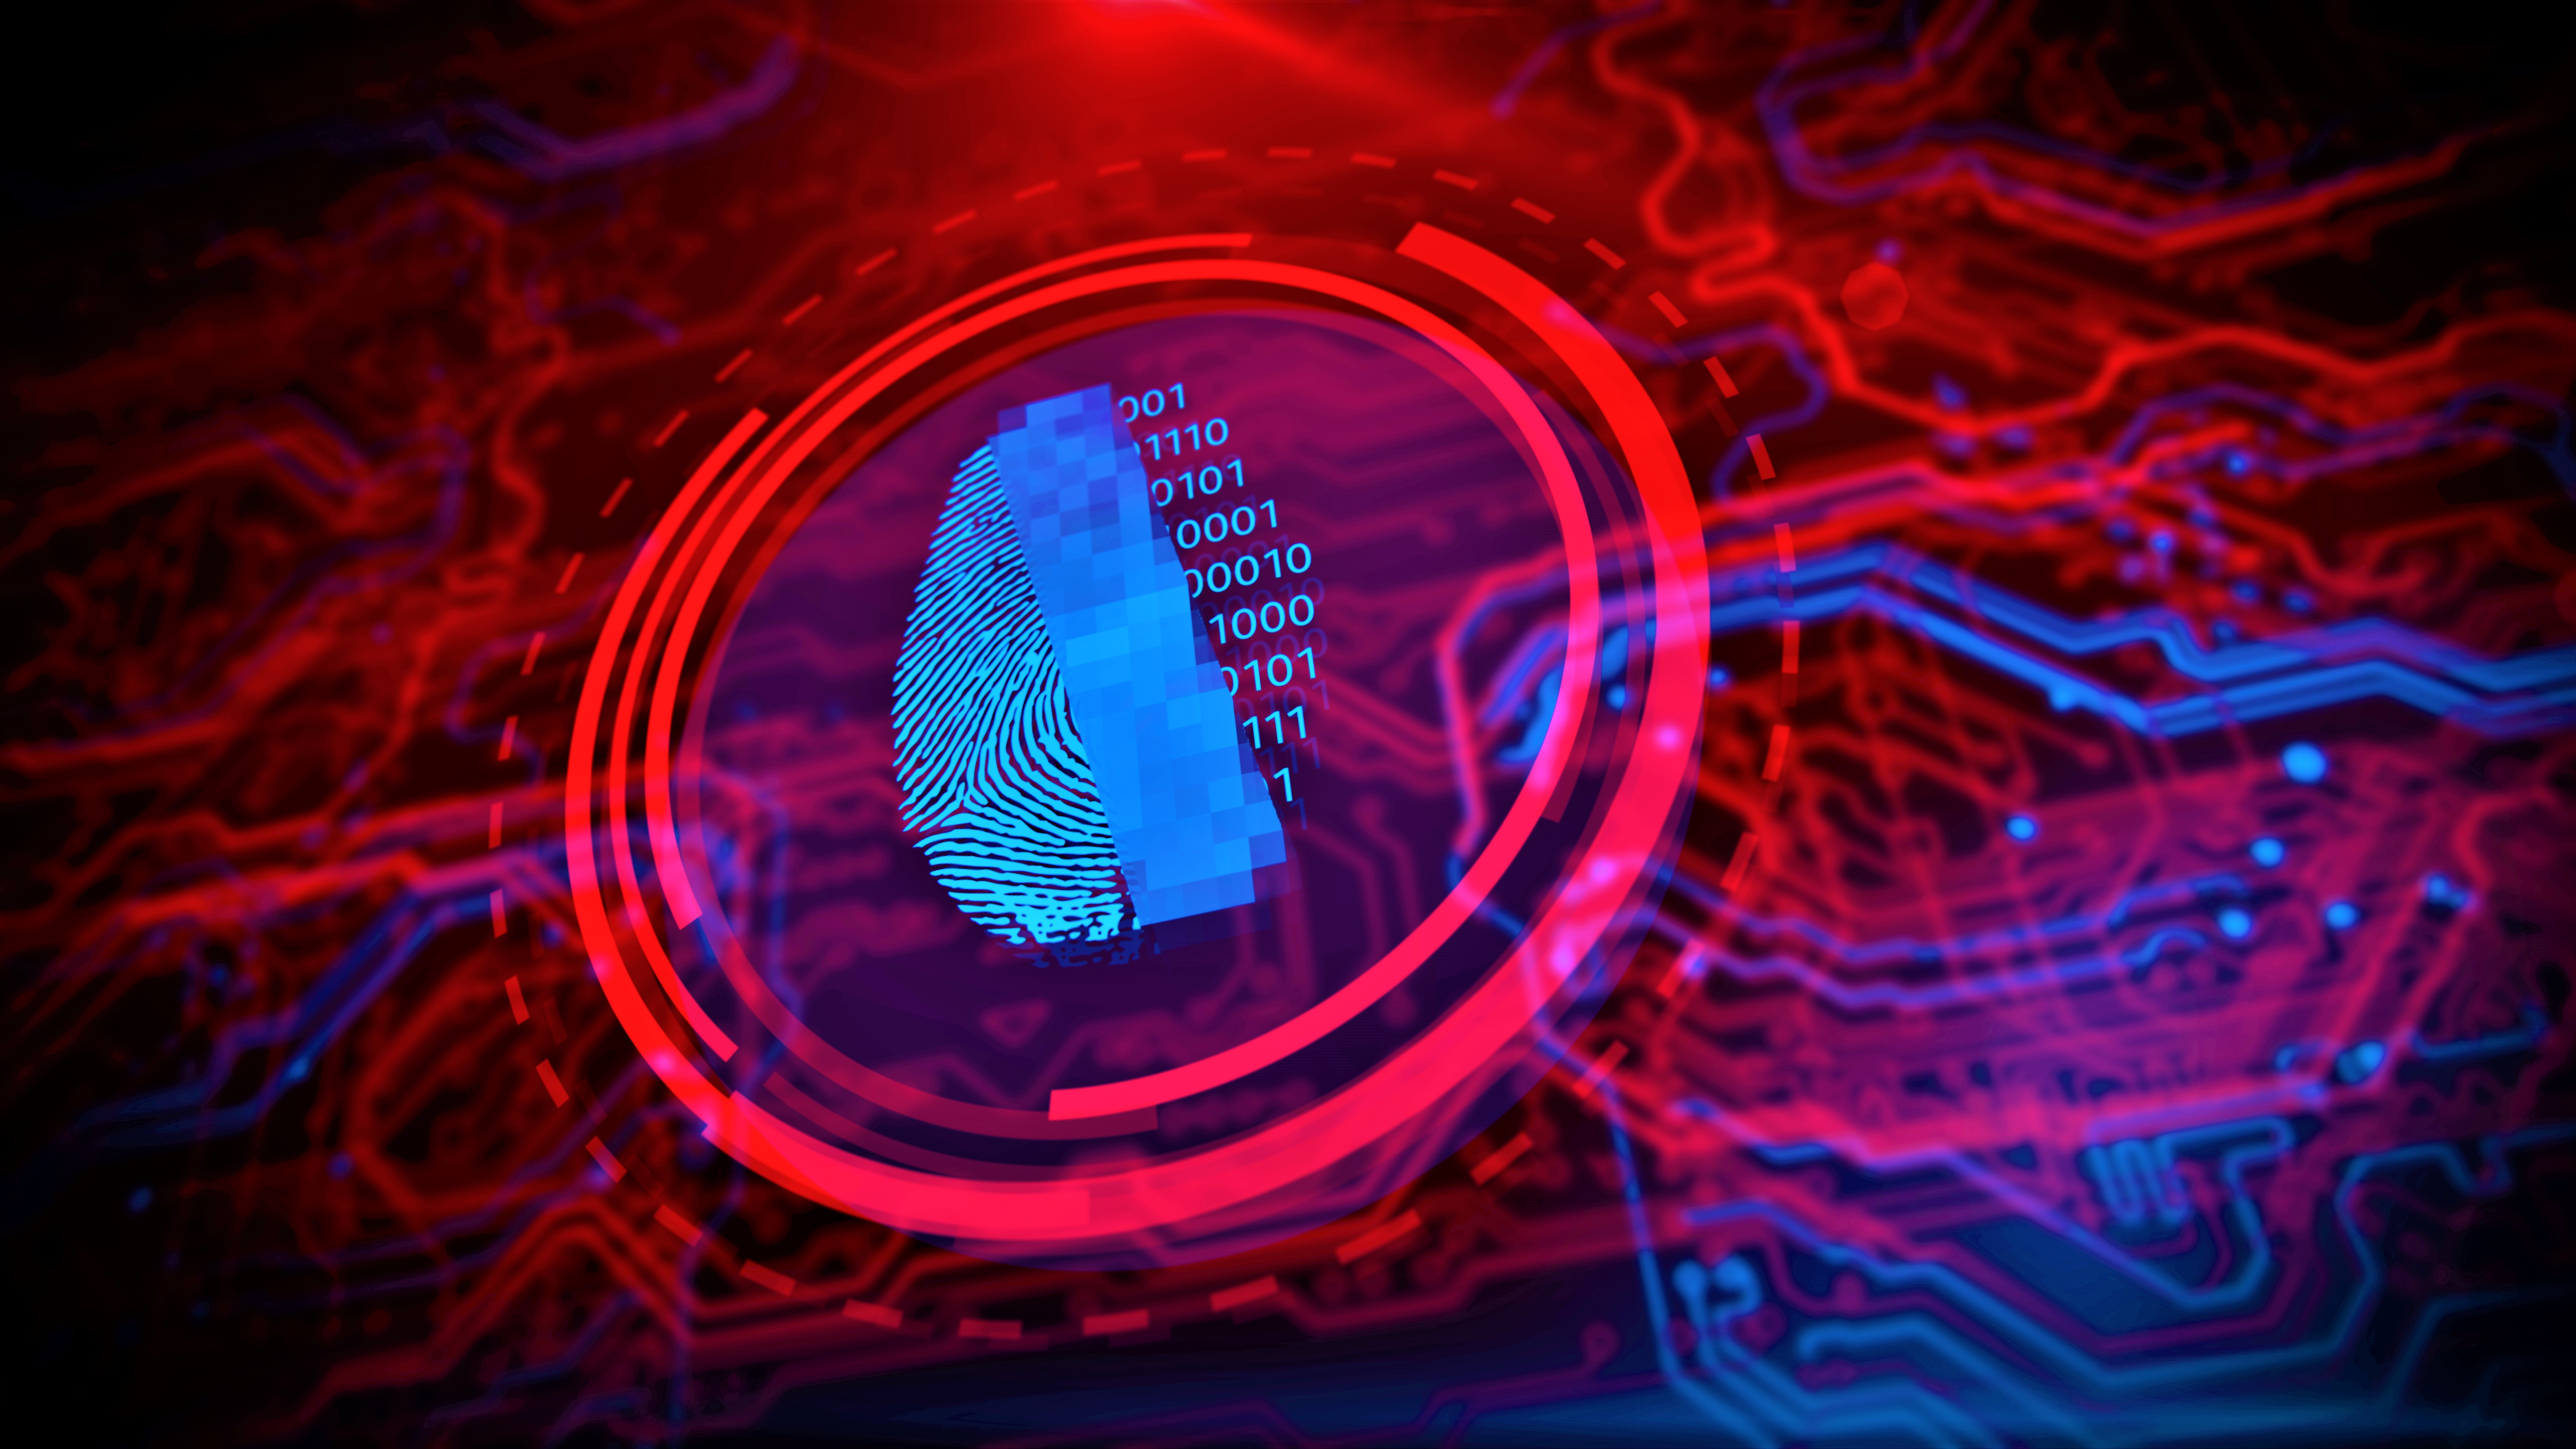 Cybersecurity and fingerprint network security.